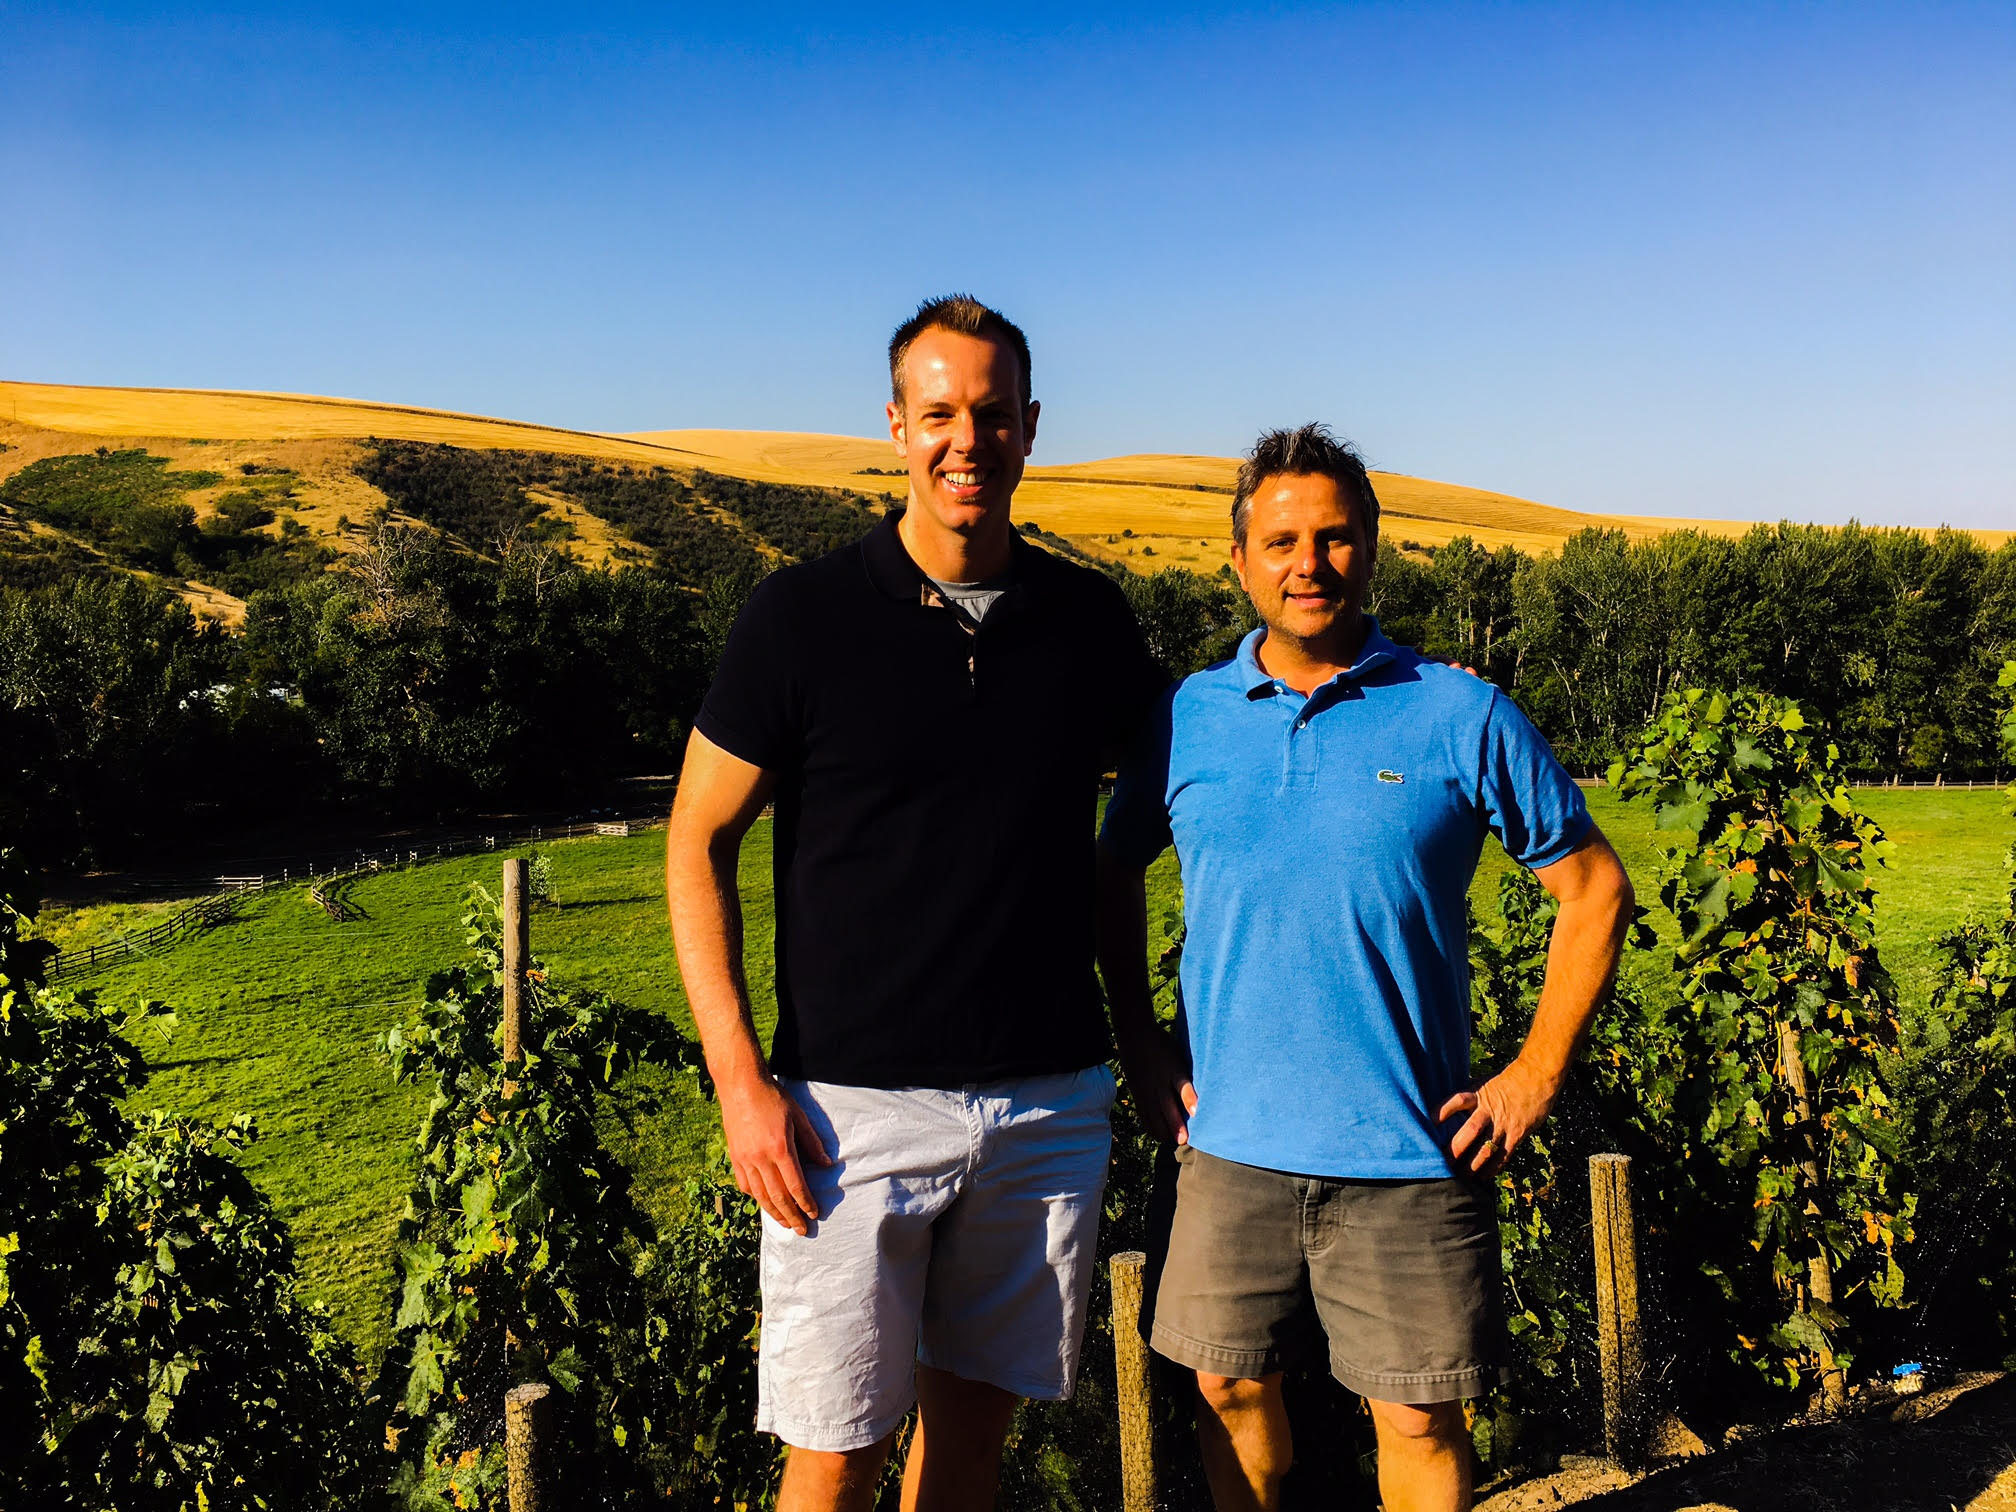 It was an awesome time hanging out with superstar vigneron, Christophe Baron, of Cayuse Vineyards